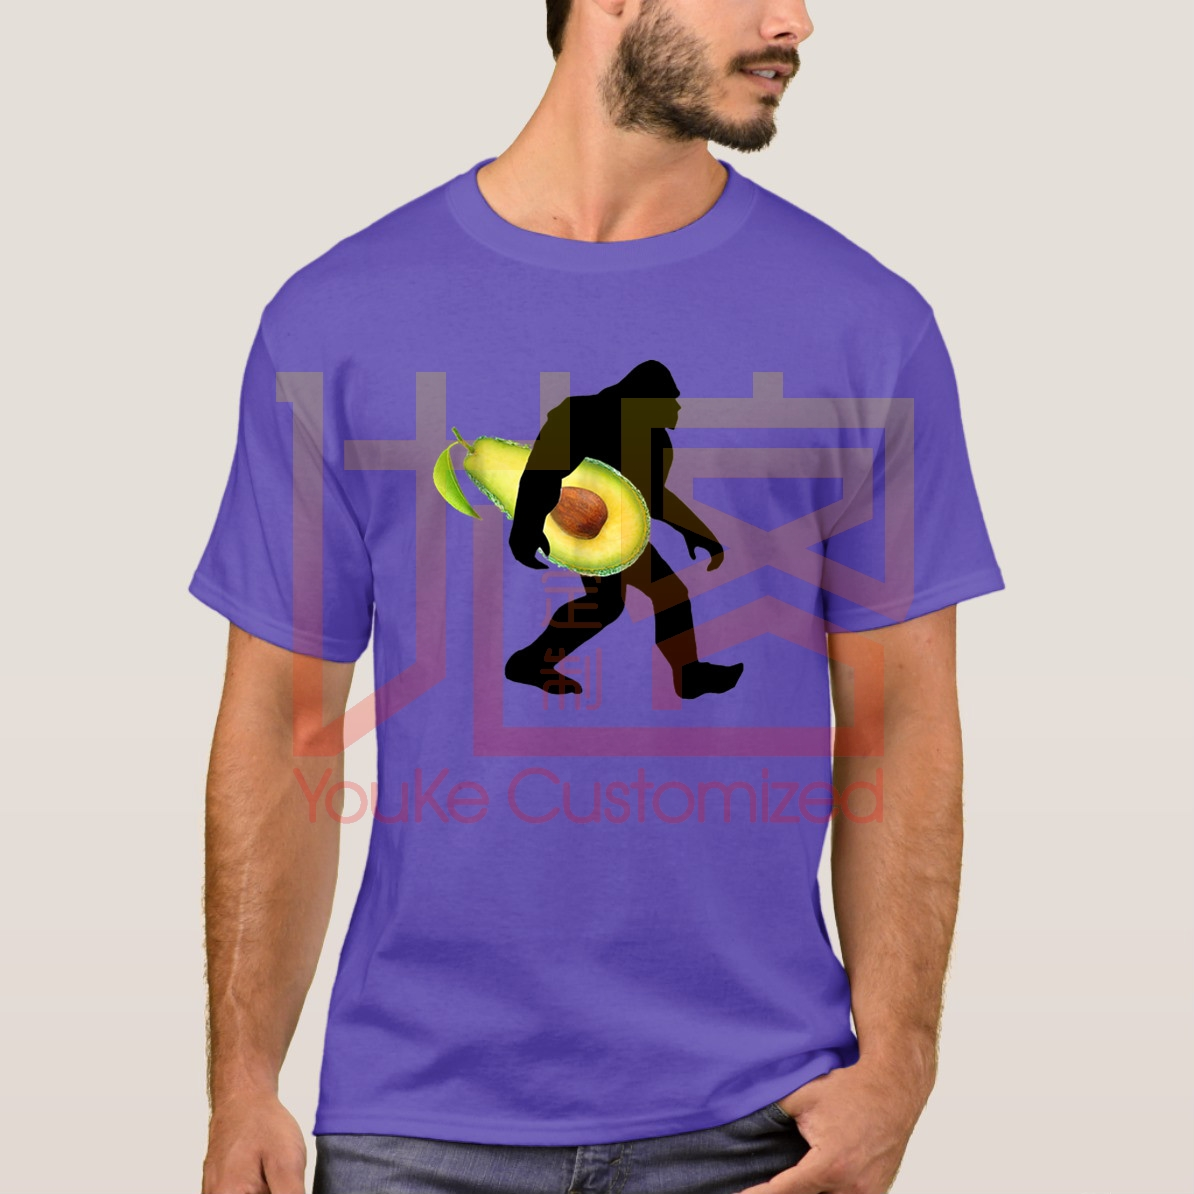 Bigfoot Carrying Avocado Shirt Funny Keto Vegan Sasquatch